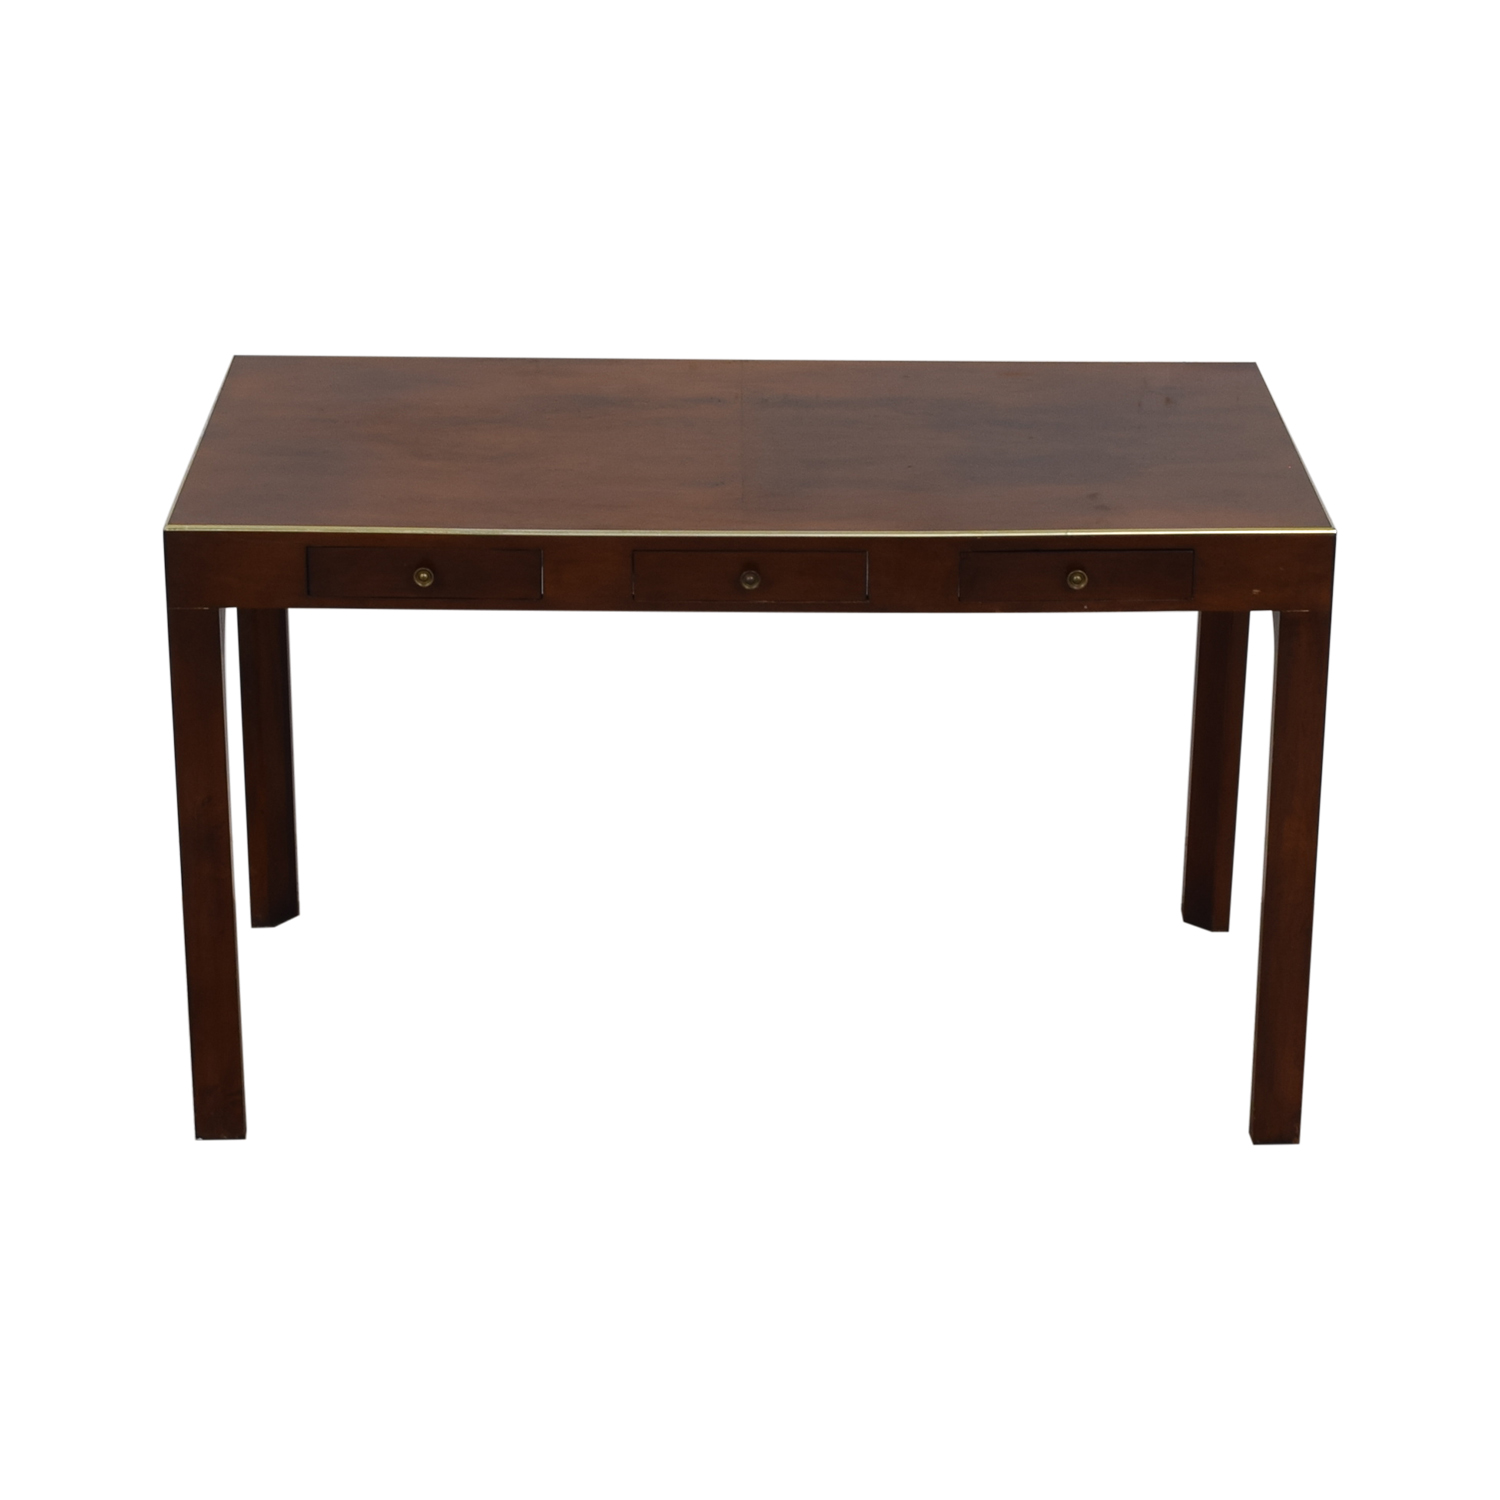 buy Holzheimers Holzheimers Three-Drawer Writing Table online